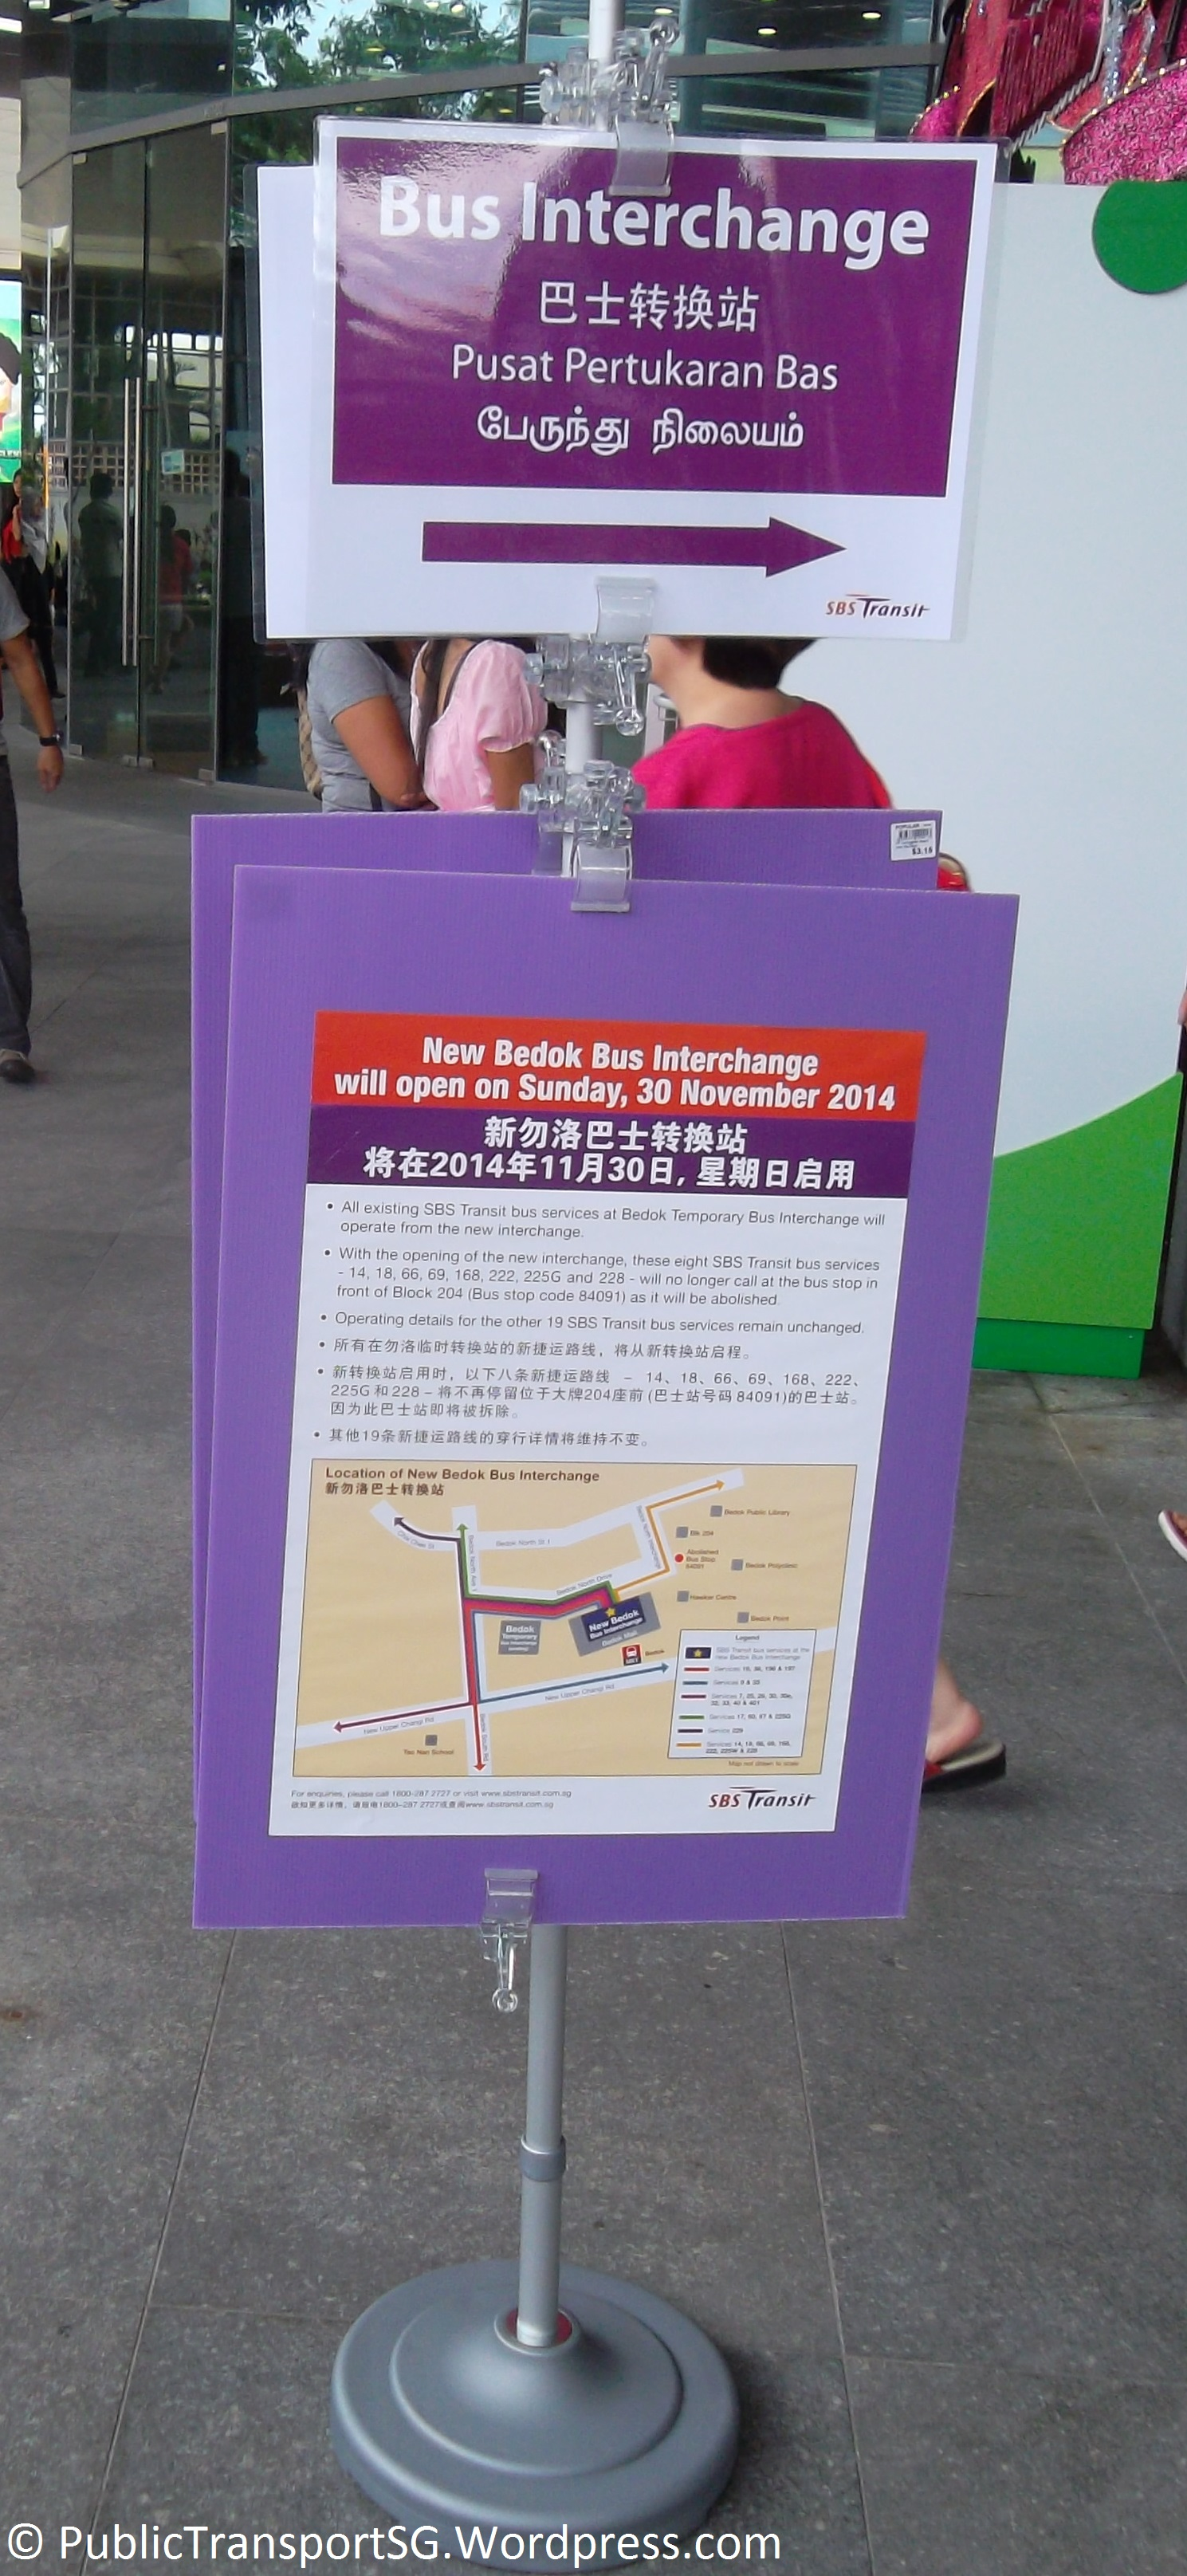 Signboard directing passengers to the new Bedok Bus Interchange